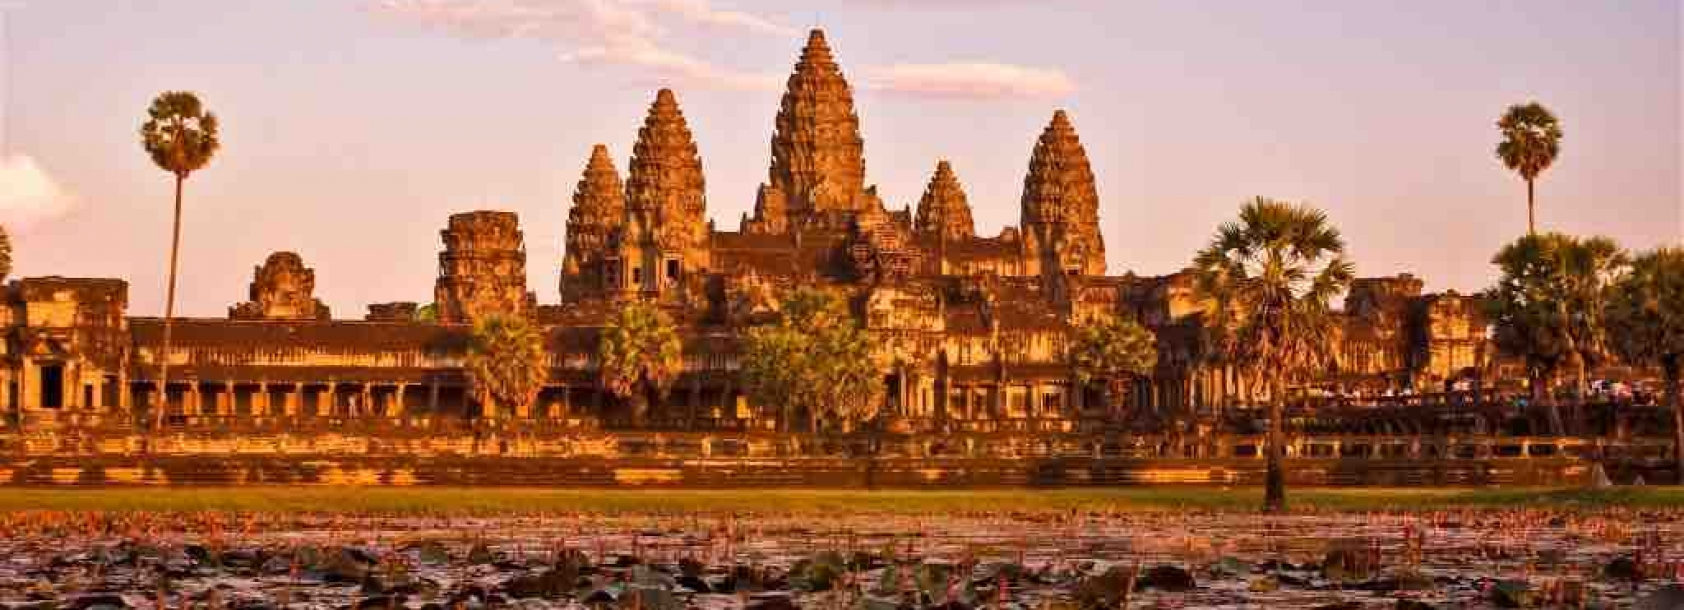 Copy of Cambodia_Angkor Wat (sunset)